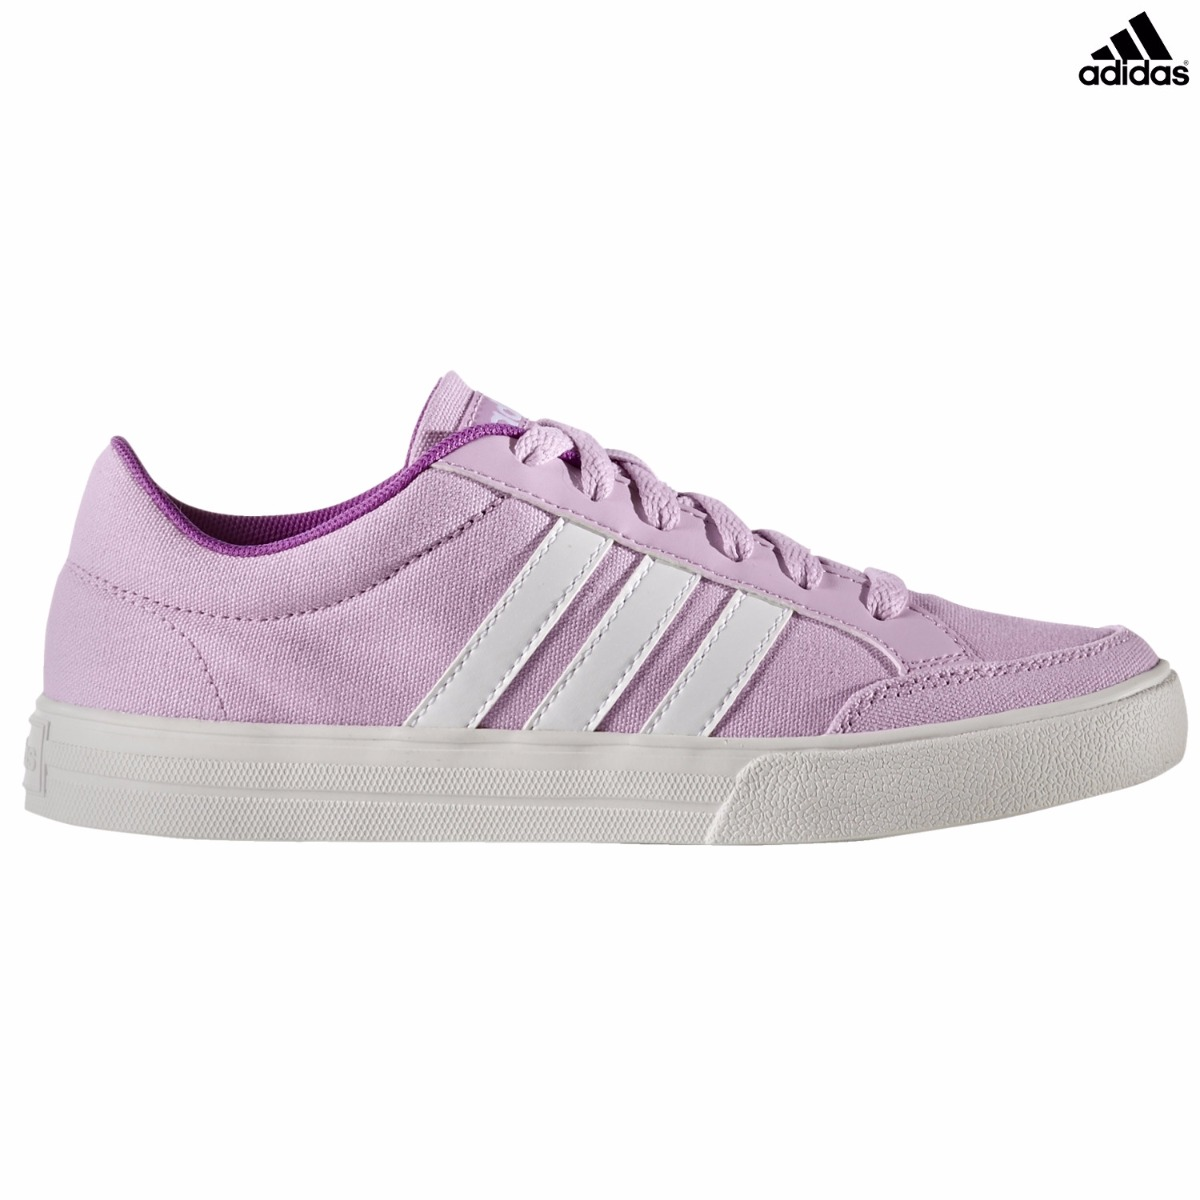 Adidas Vs Set Men S Casual Shoes